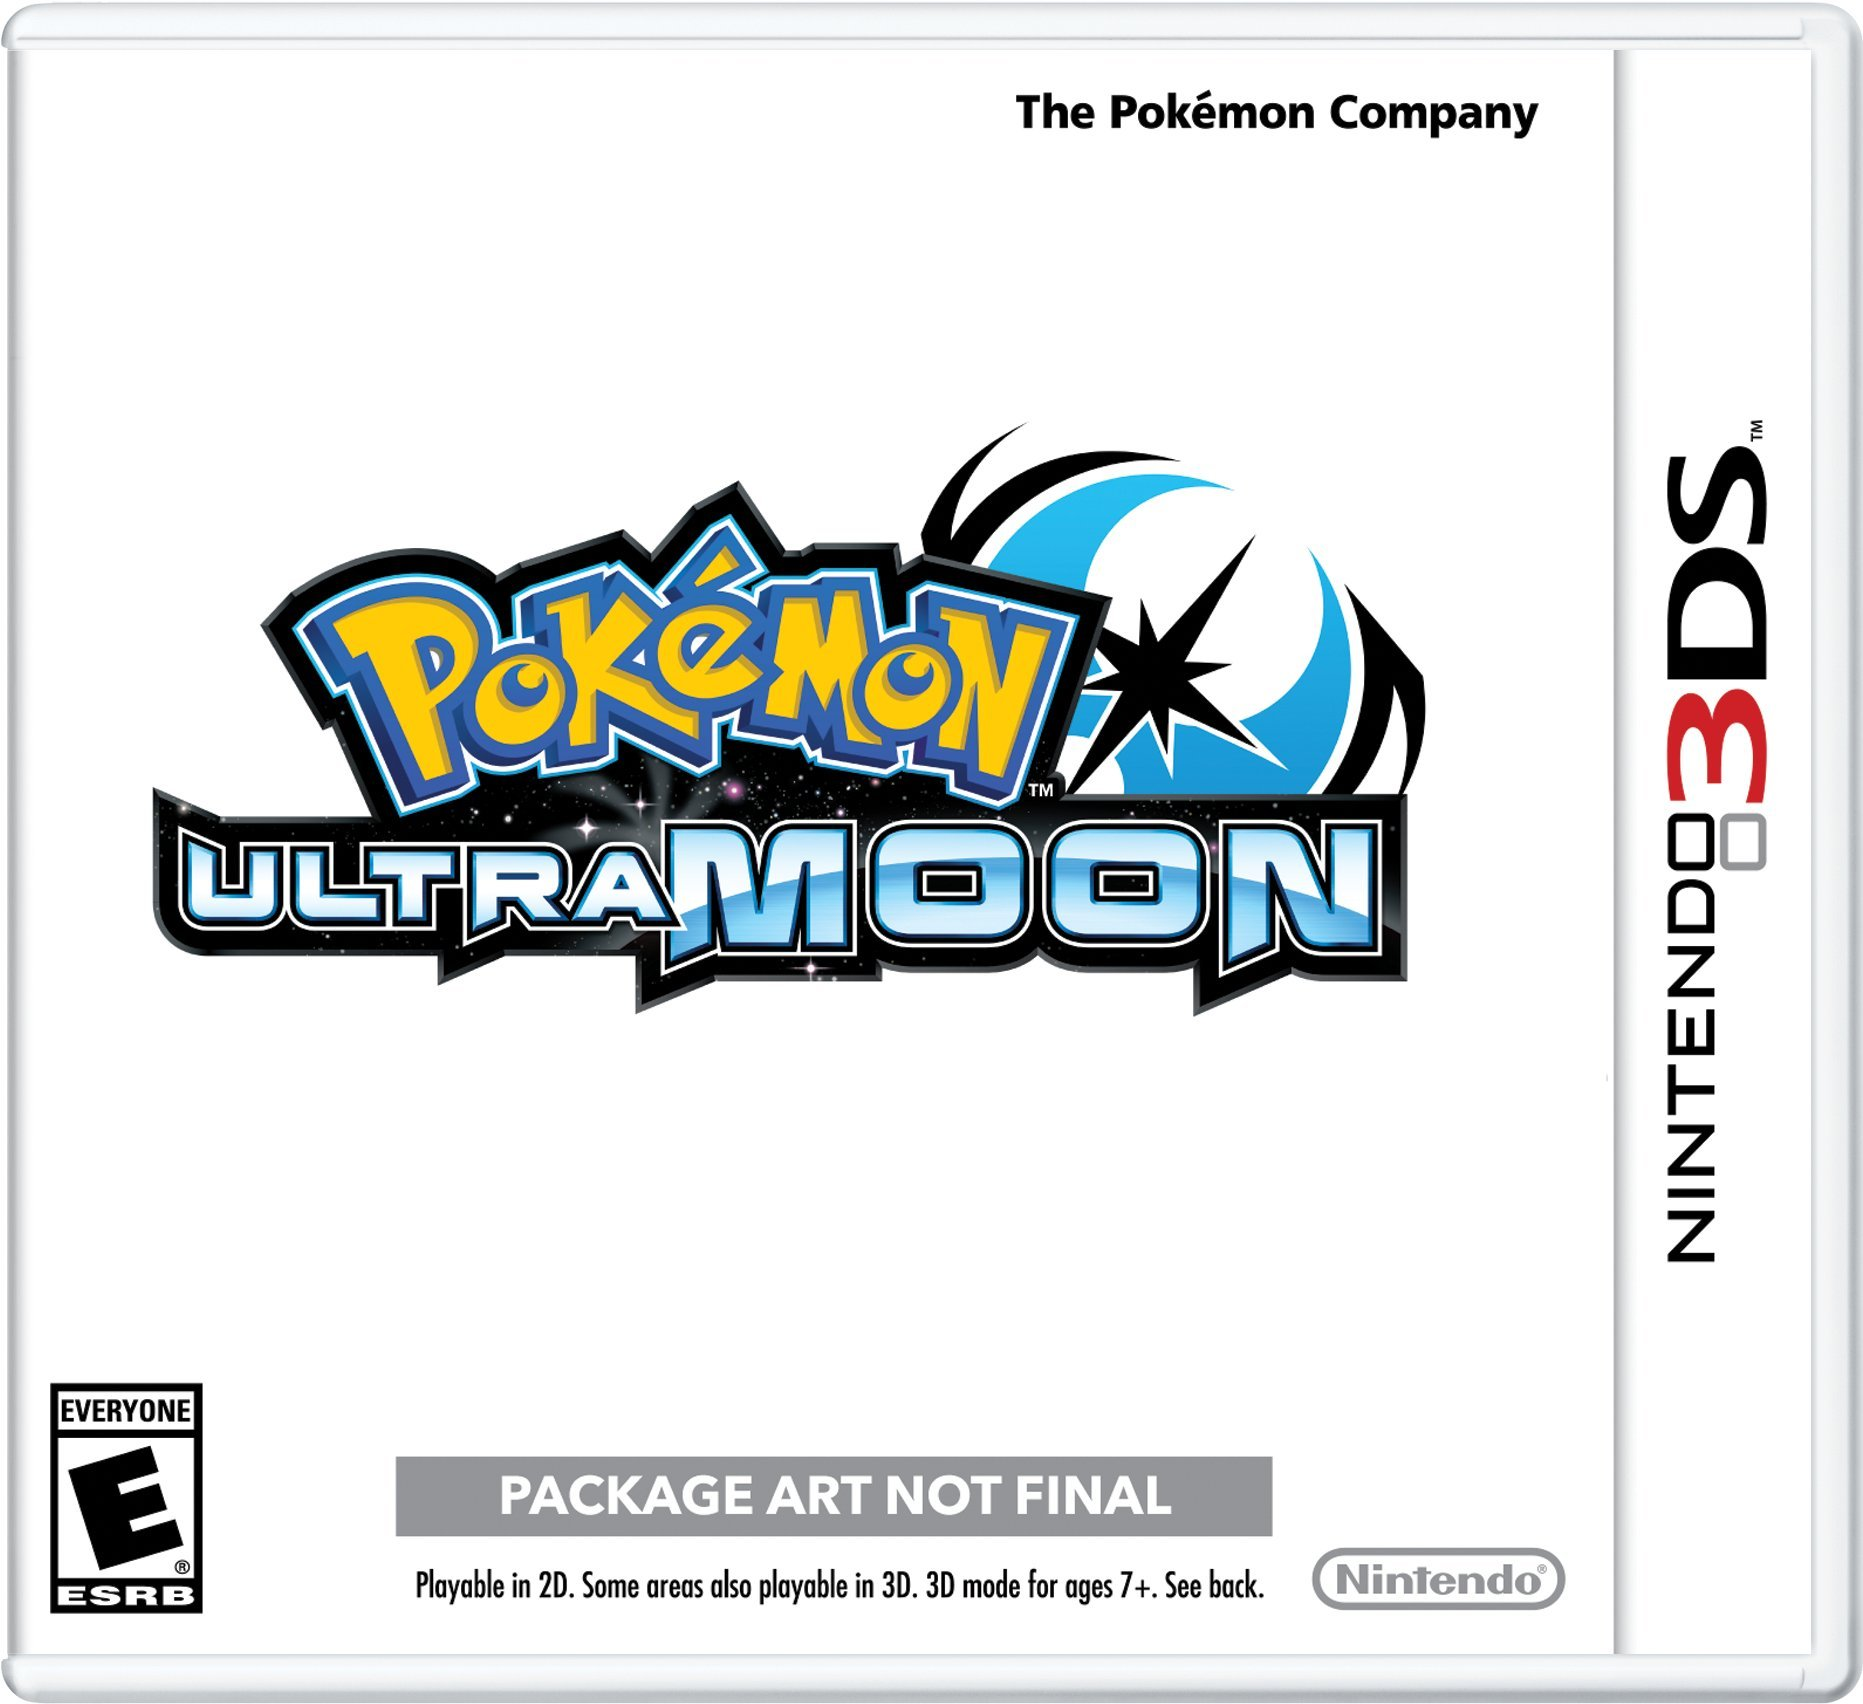 Pokémon Ultra Sun and Ultra Moon Steelbook Dual Pack - Nintendo 3DS by Nintendo (Image #7)